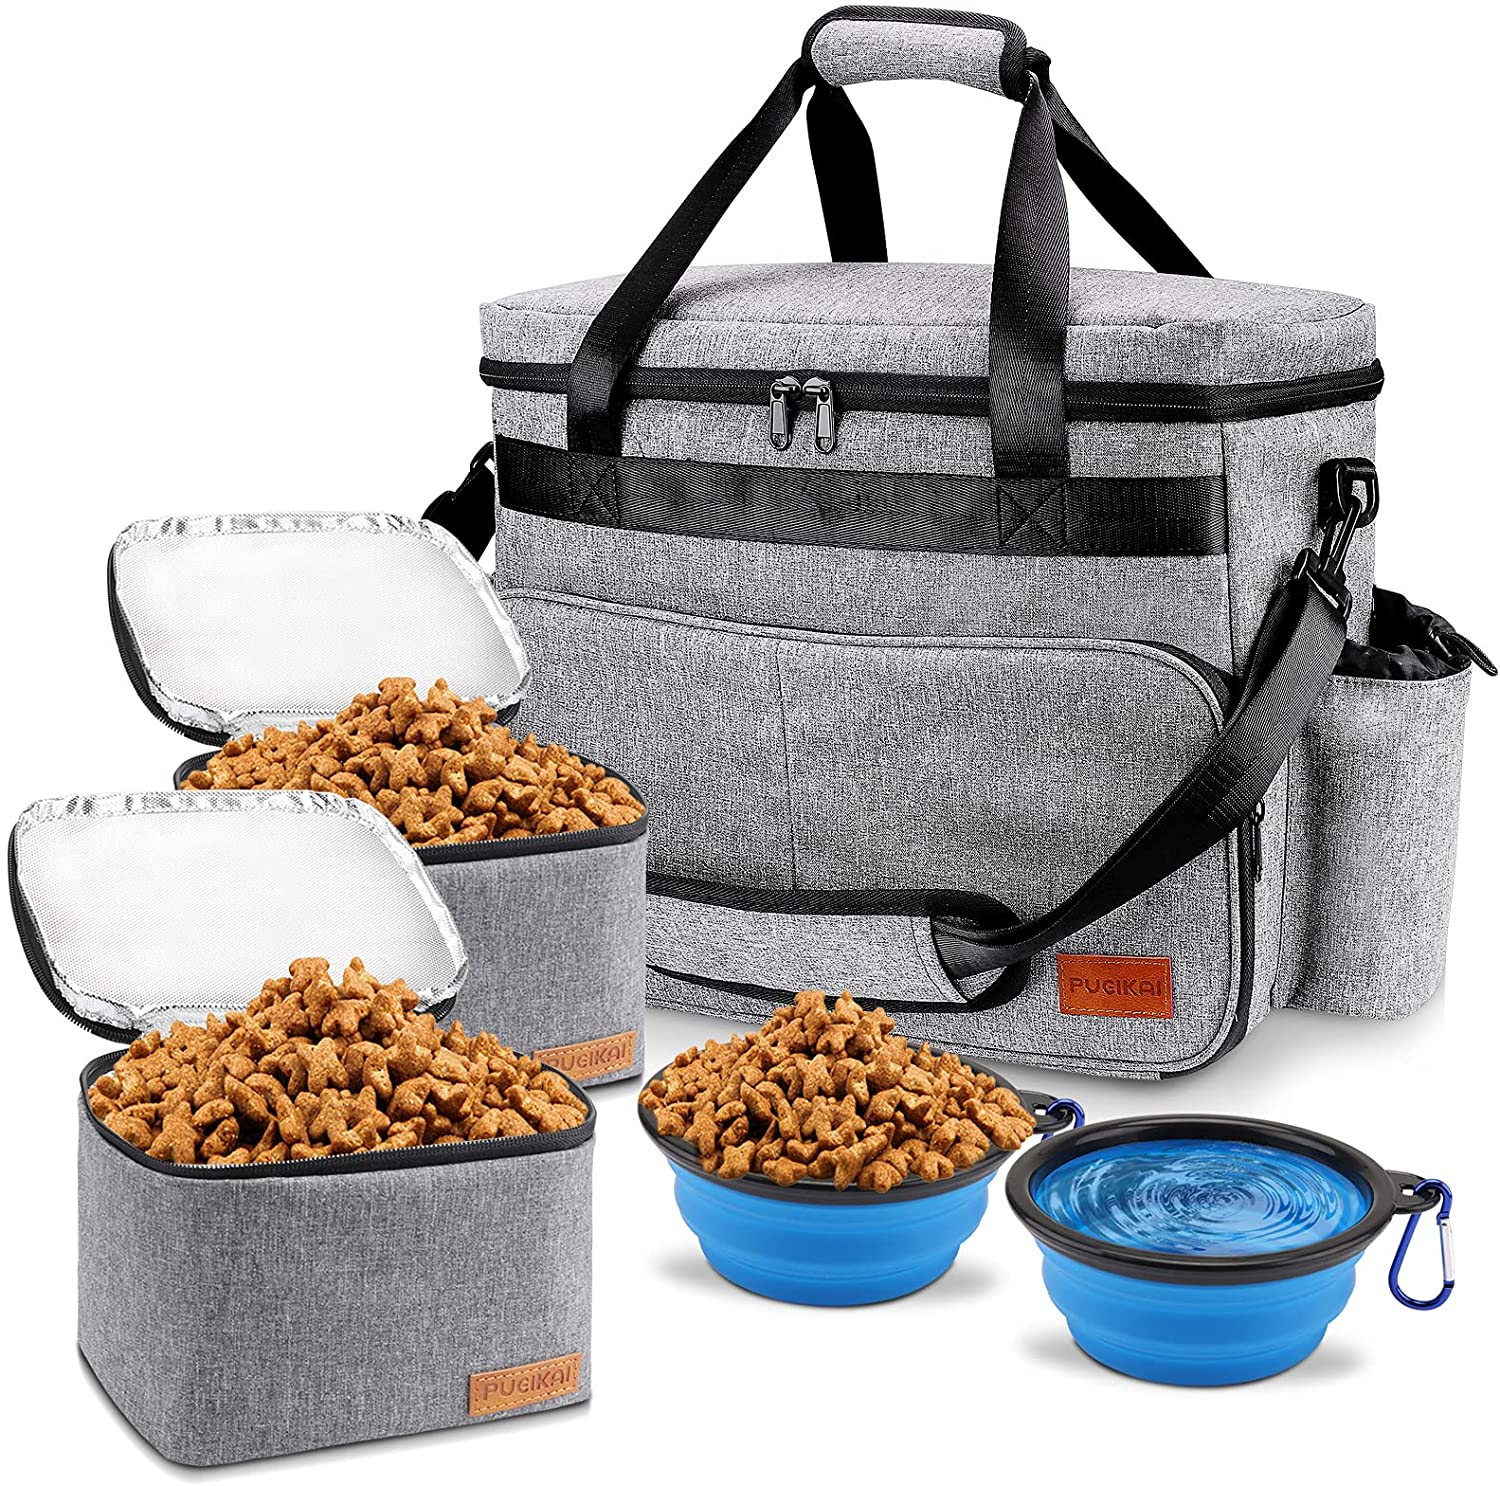 Dog Travel Bag, Airline Approved Pet Tote Organizer with Multi-Function Pockets, Accessories Set Includes Shoulder Strap, 2 Food Storage Containers, 2 Foldable Bowls, Perfect for a Weekend Away